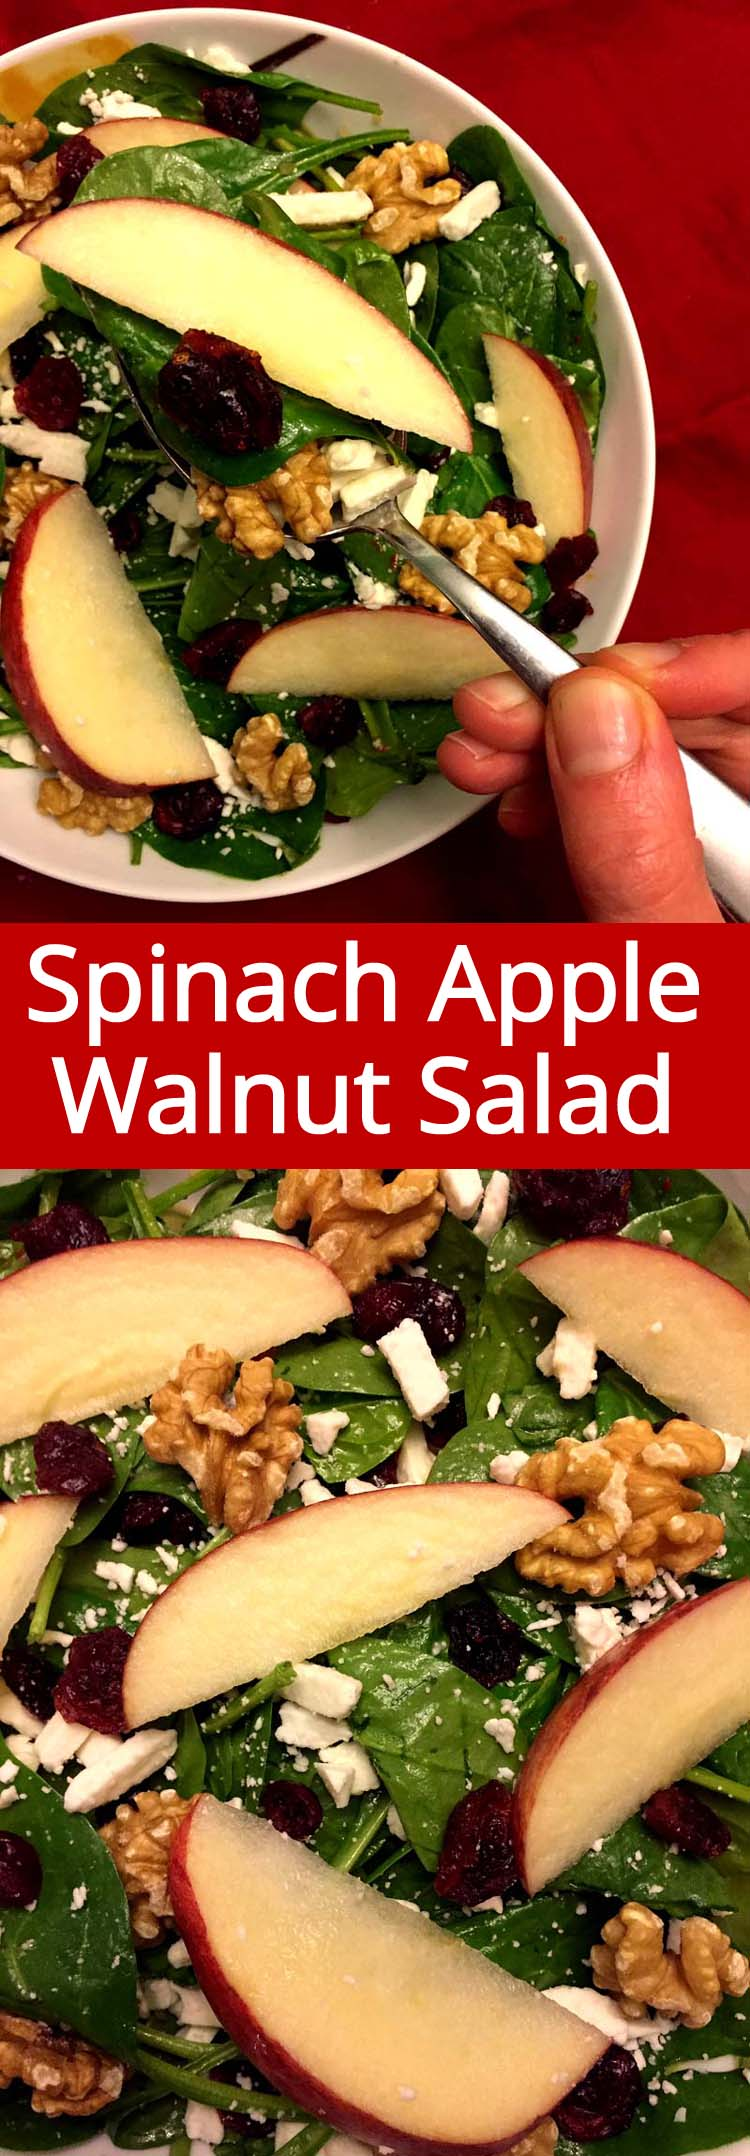 This spinach apple cranberry walnut salad is amazing! What a great combo, I love it!